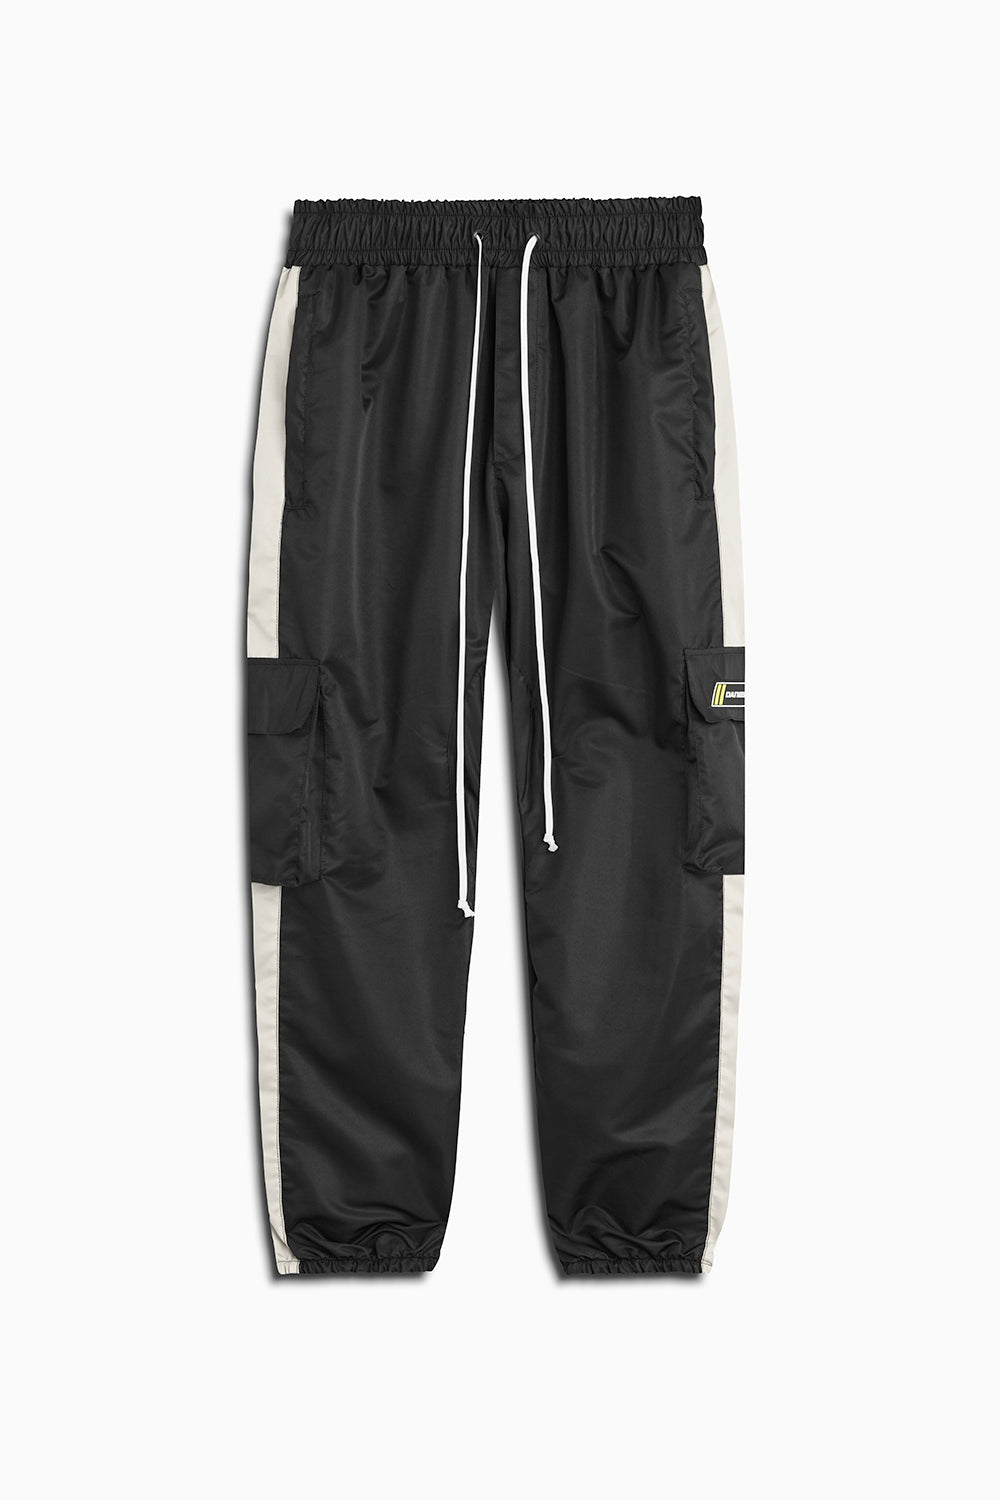 cargo parachute track pant in black/ivory by daniel patrick